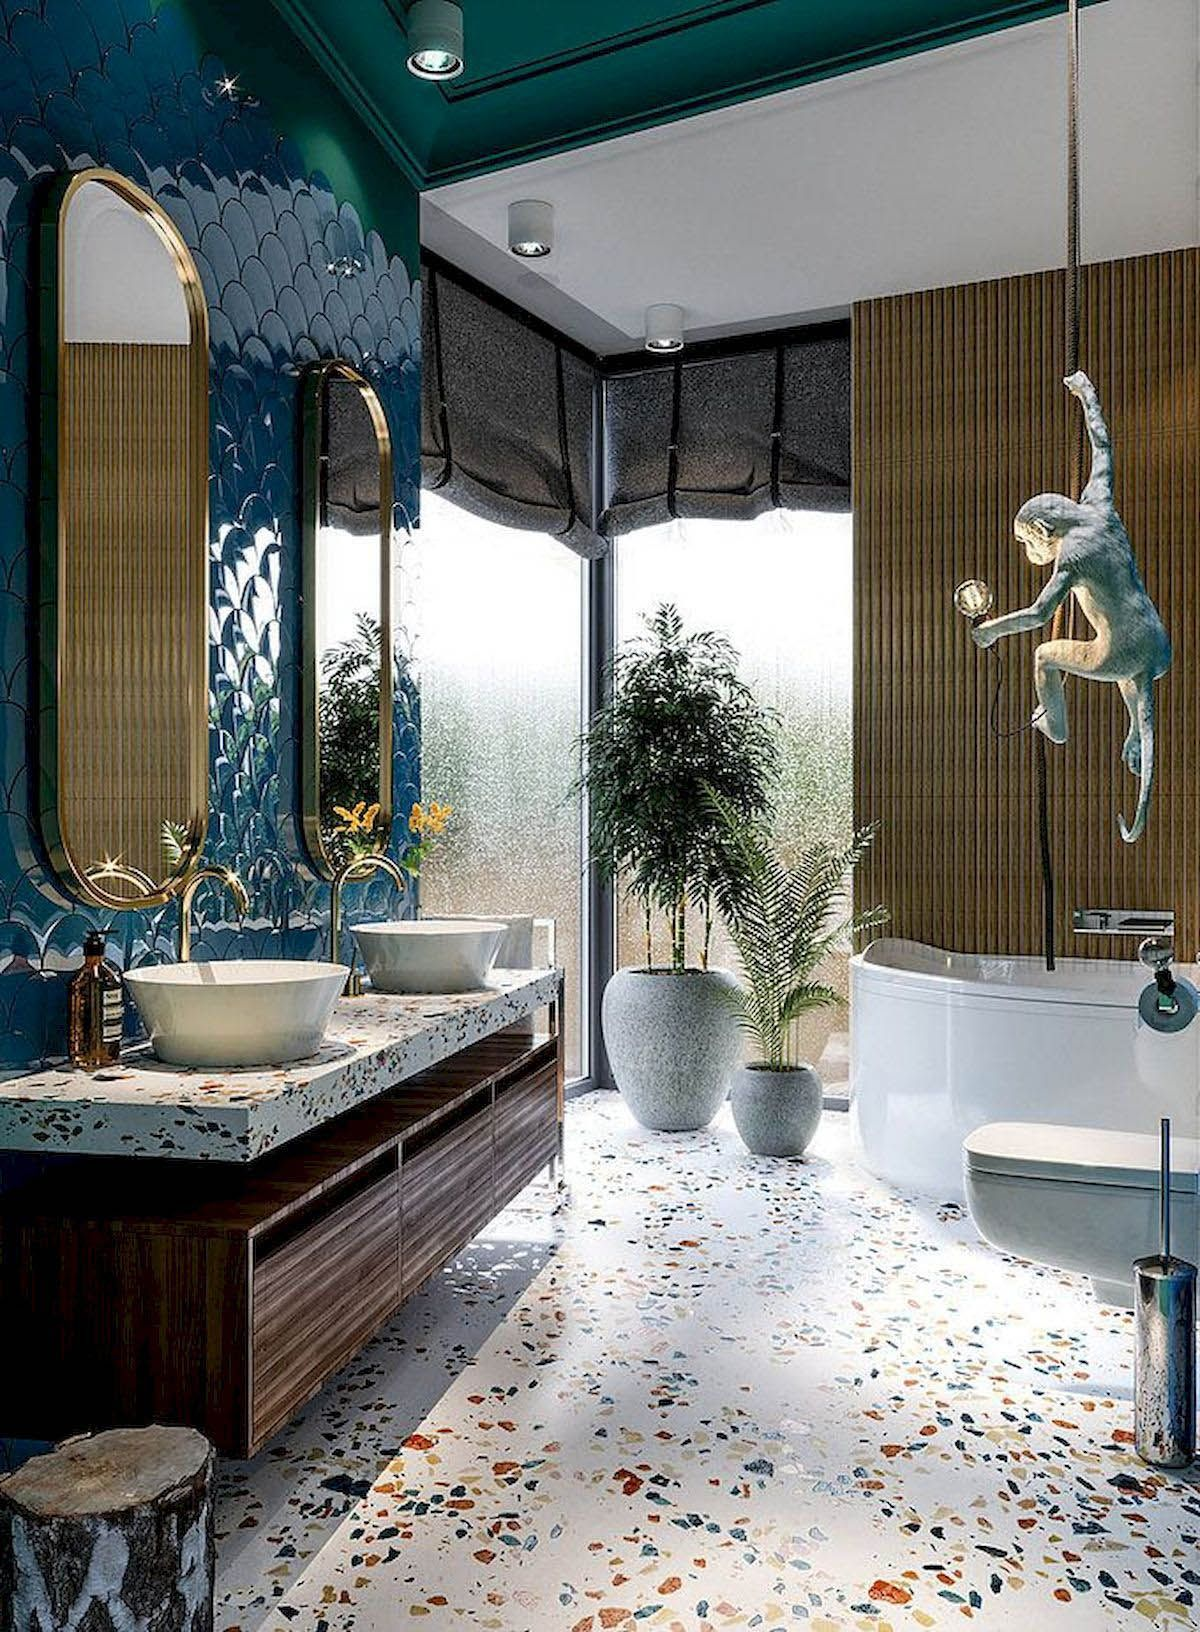 Bathroom Flooring Ideas To Offer Your Flooring Area The Wow Variable Traditional Bathroom Designs Modern Bathroom Design Dream Bathrooms